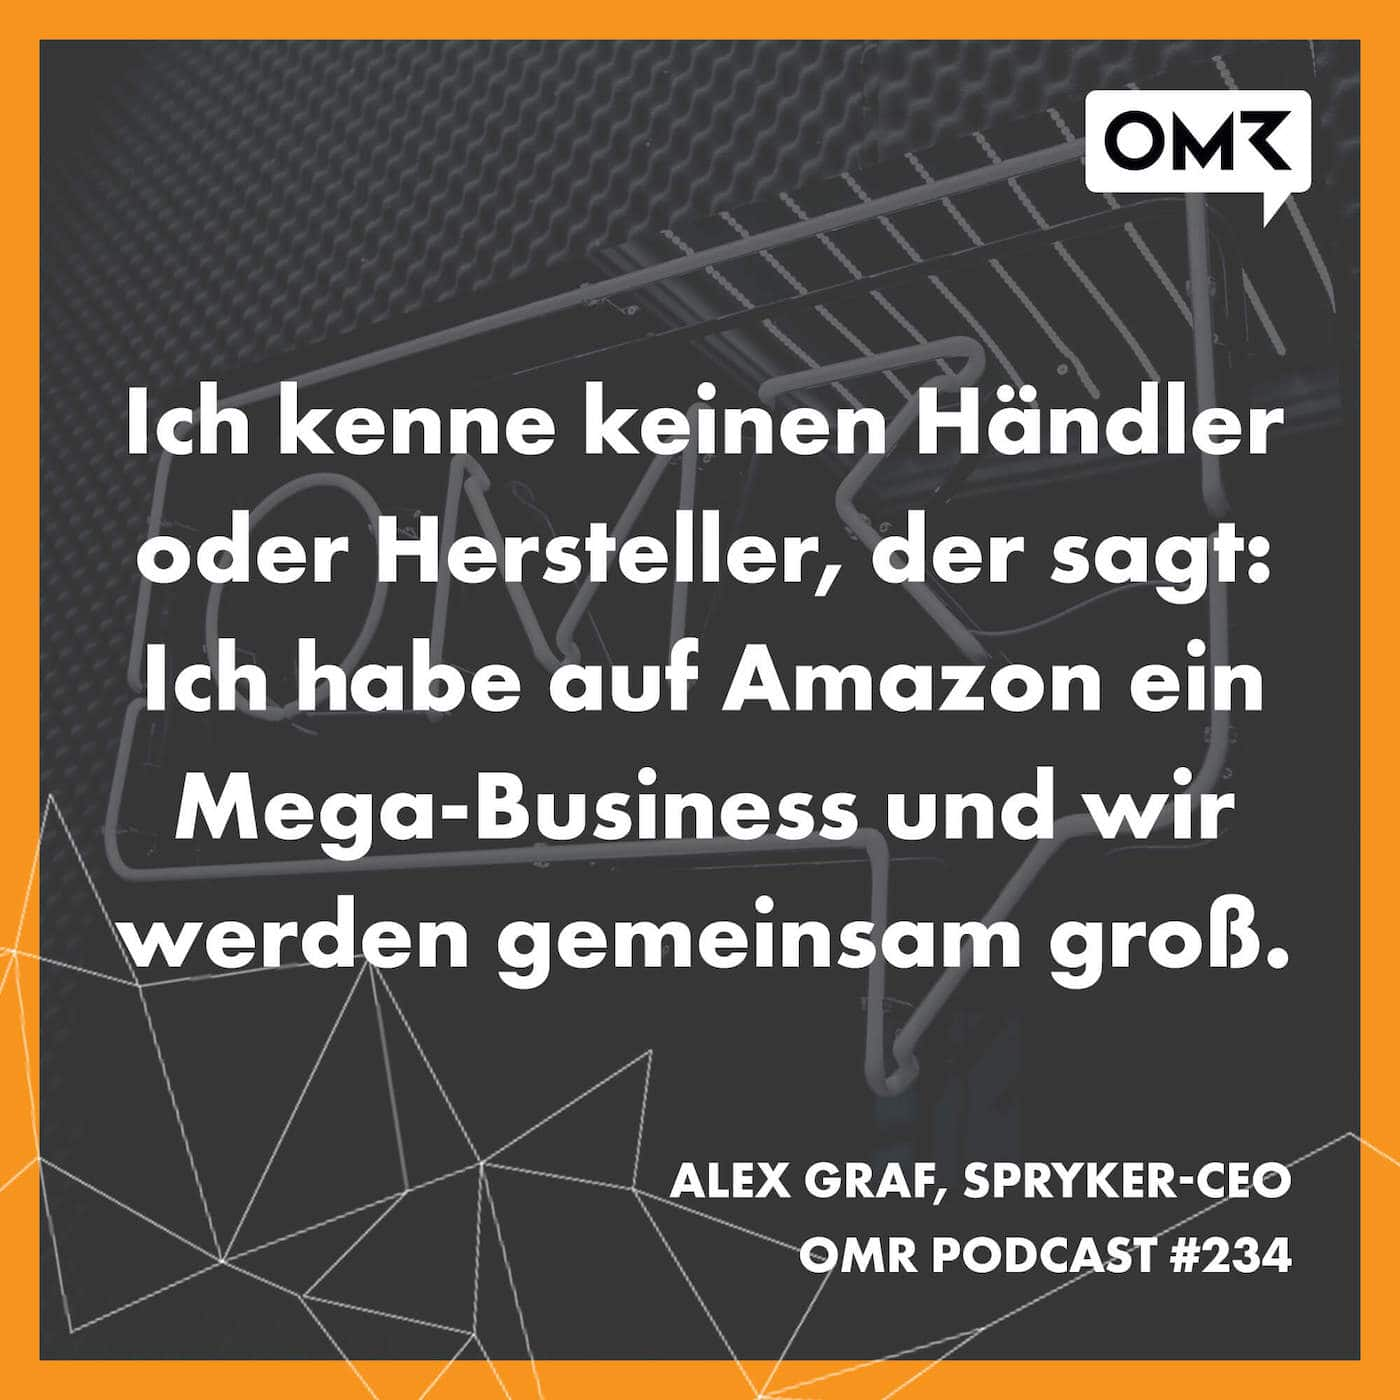 OMR Amazon Fokus Händler